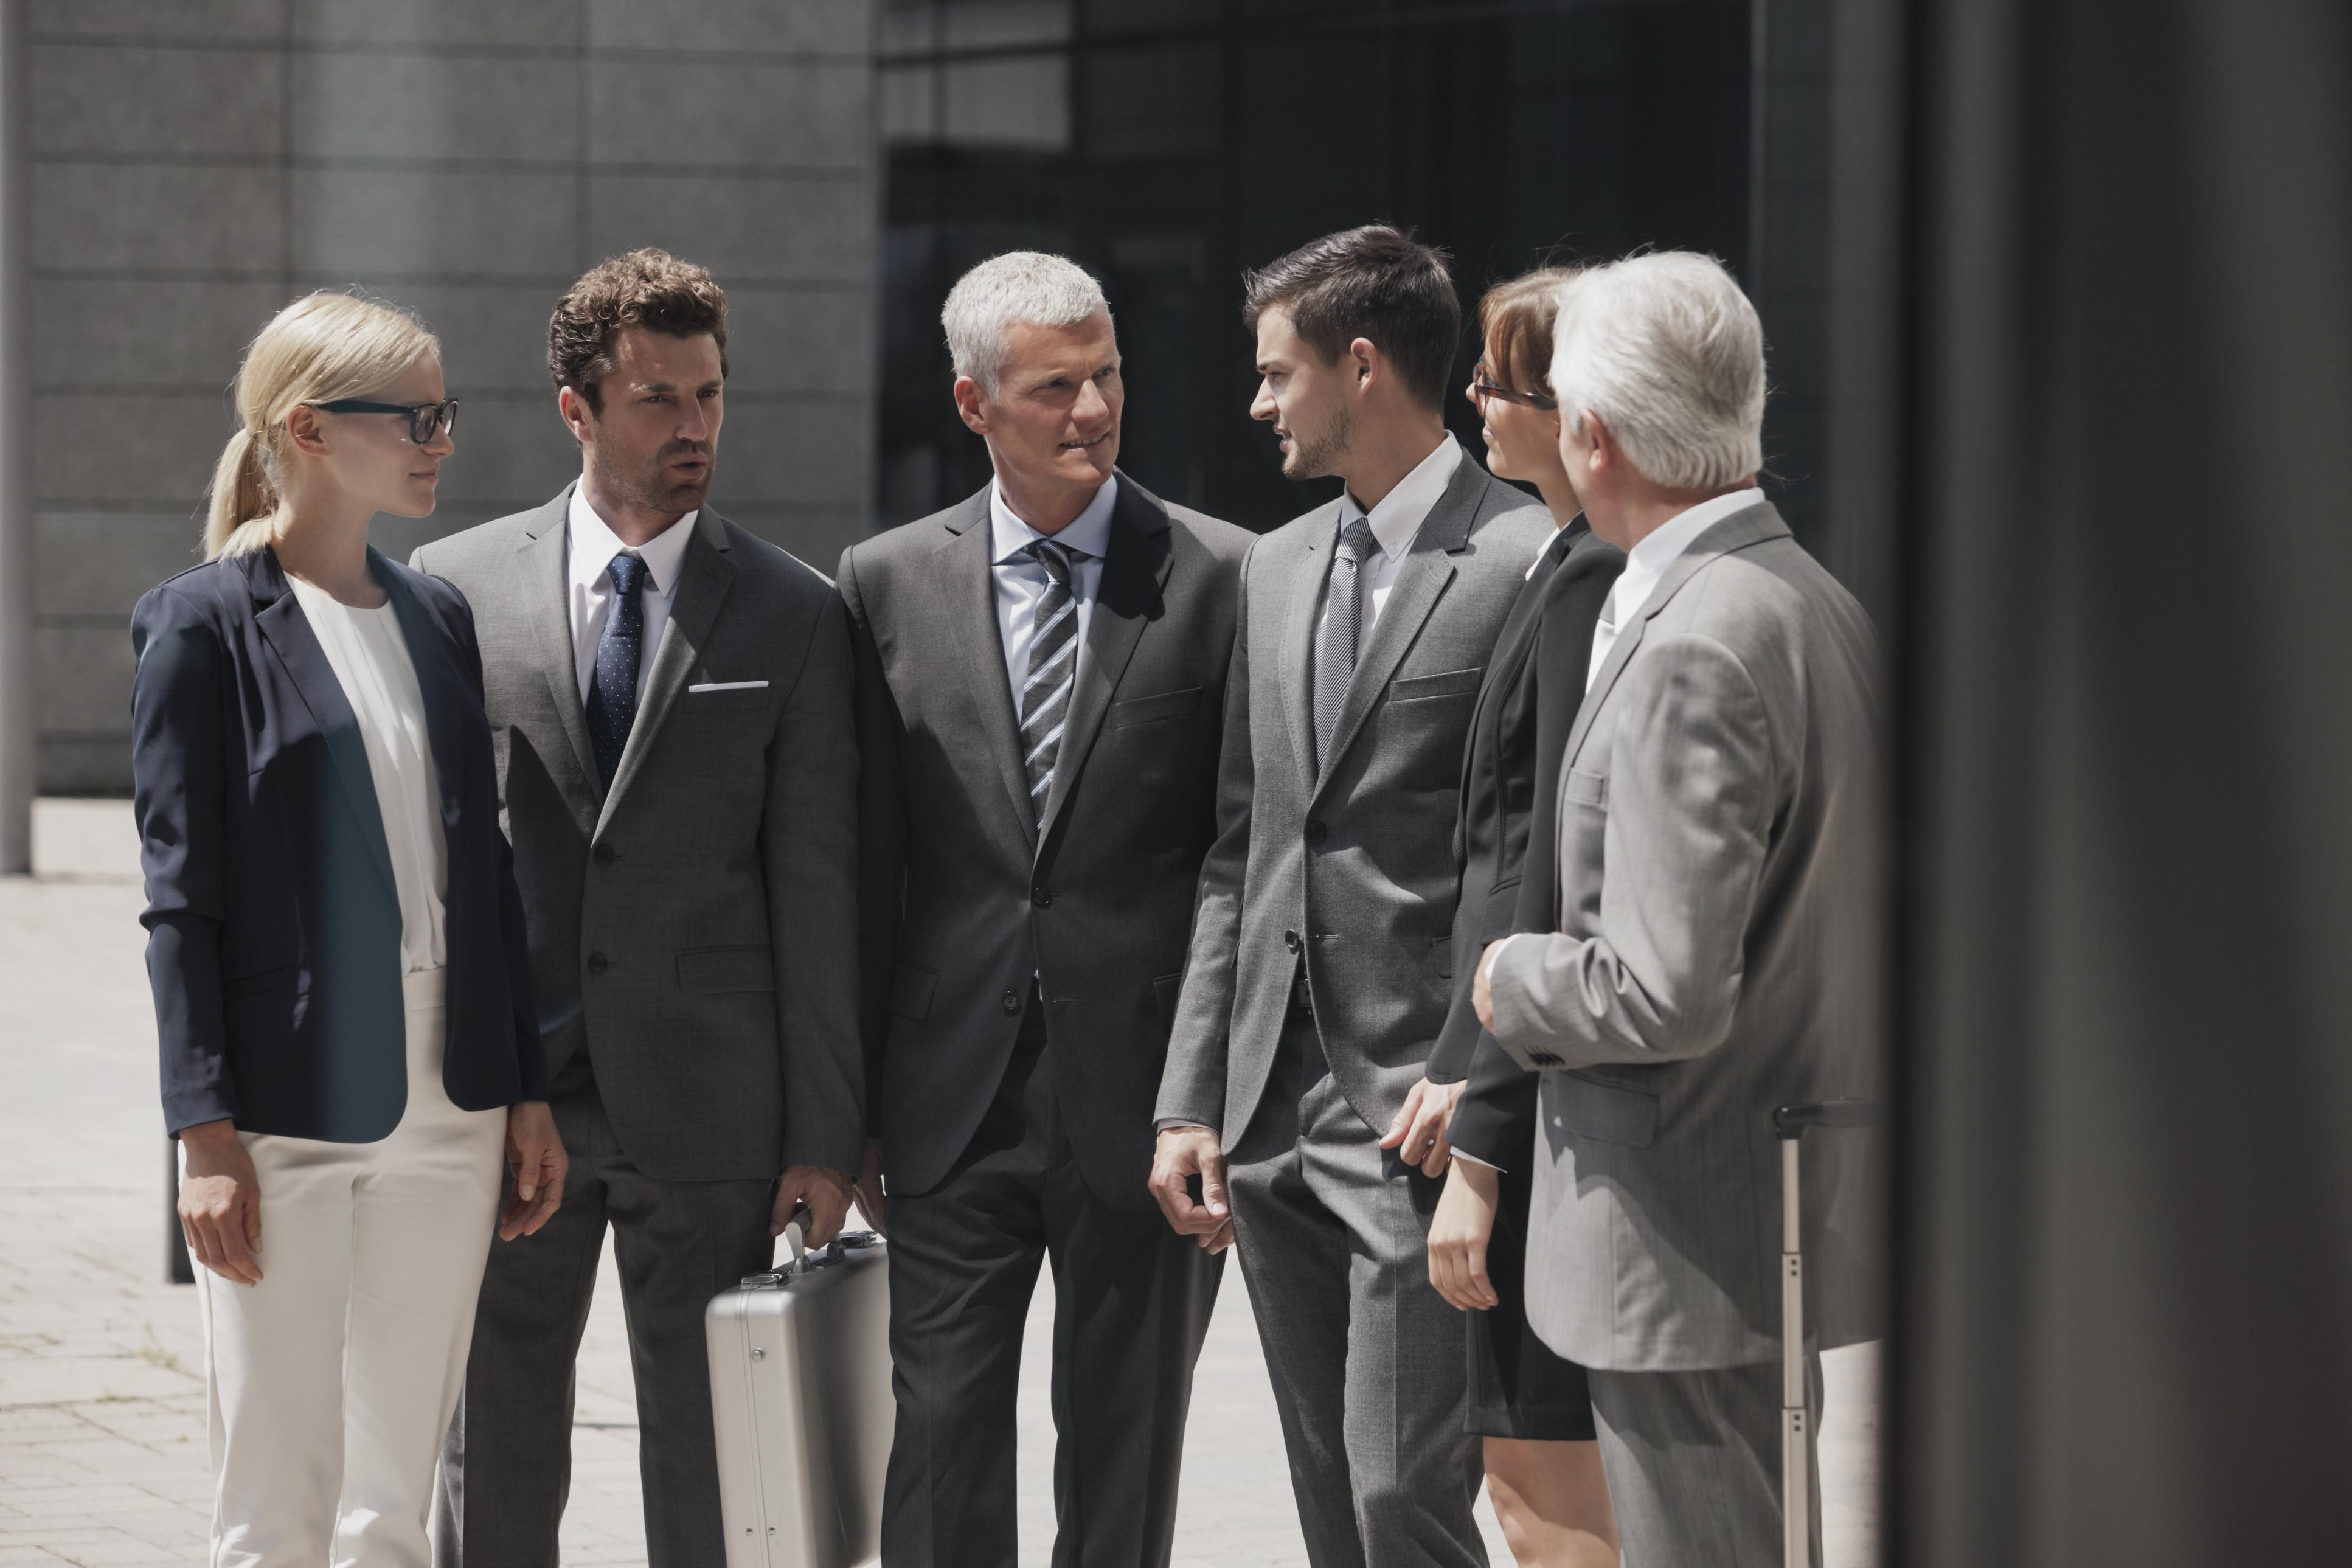 learn how to dress in a business formal professional workplace